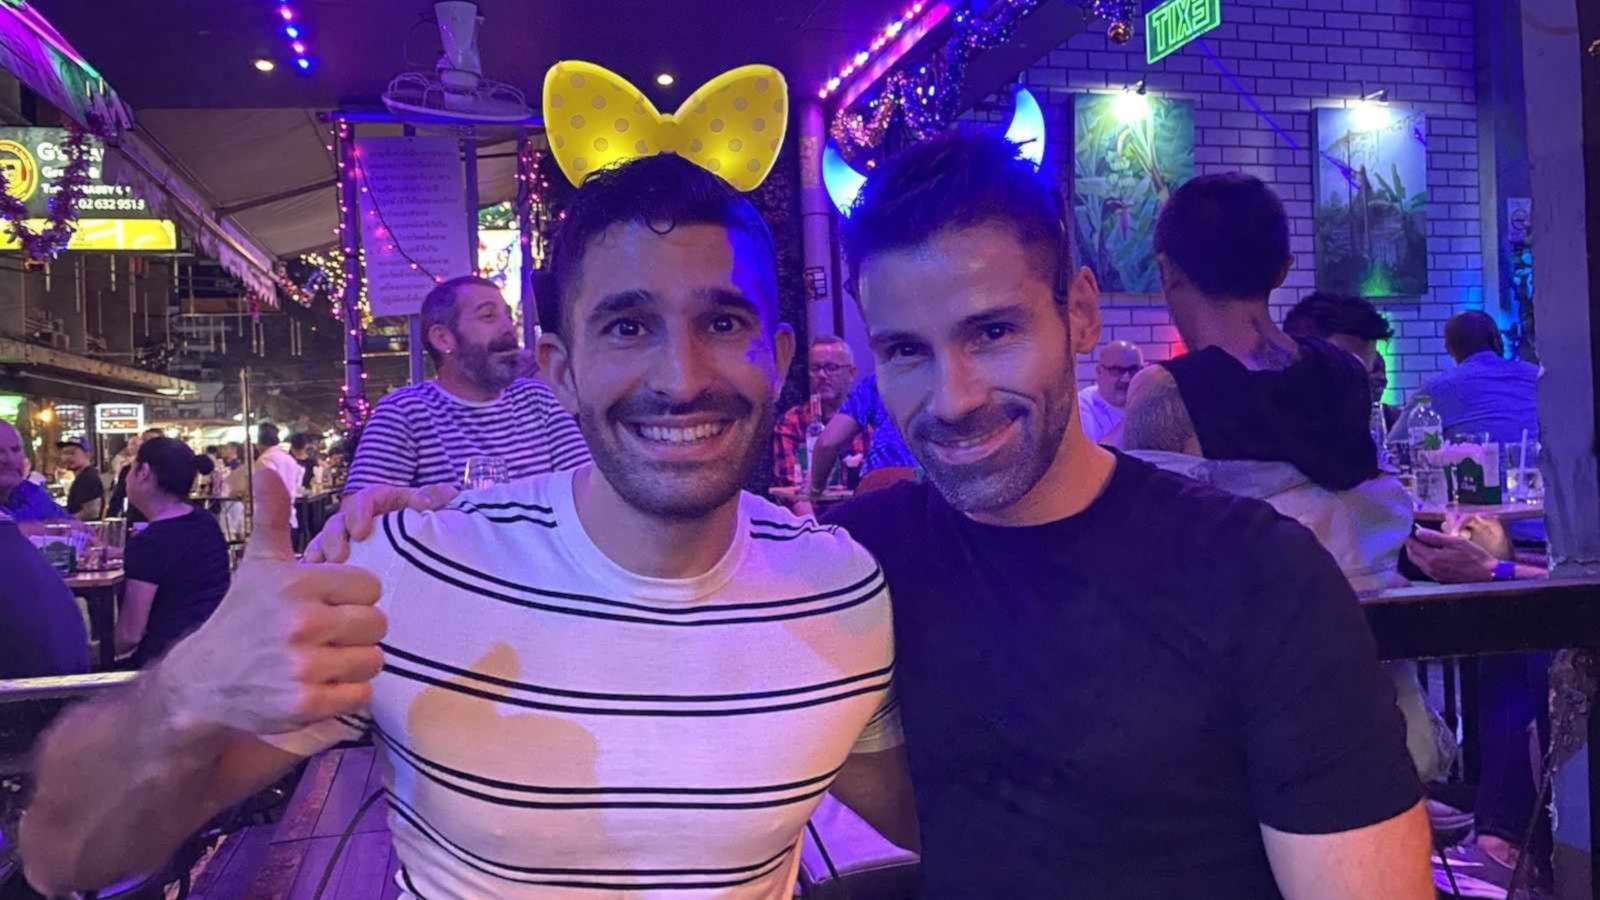 Bangkok is very safe for gay travellers and very fun as well!